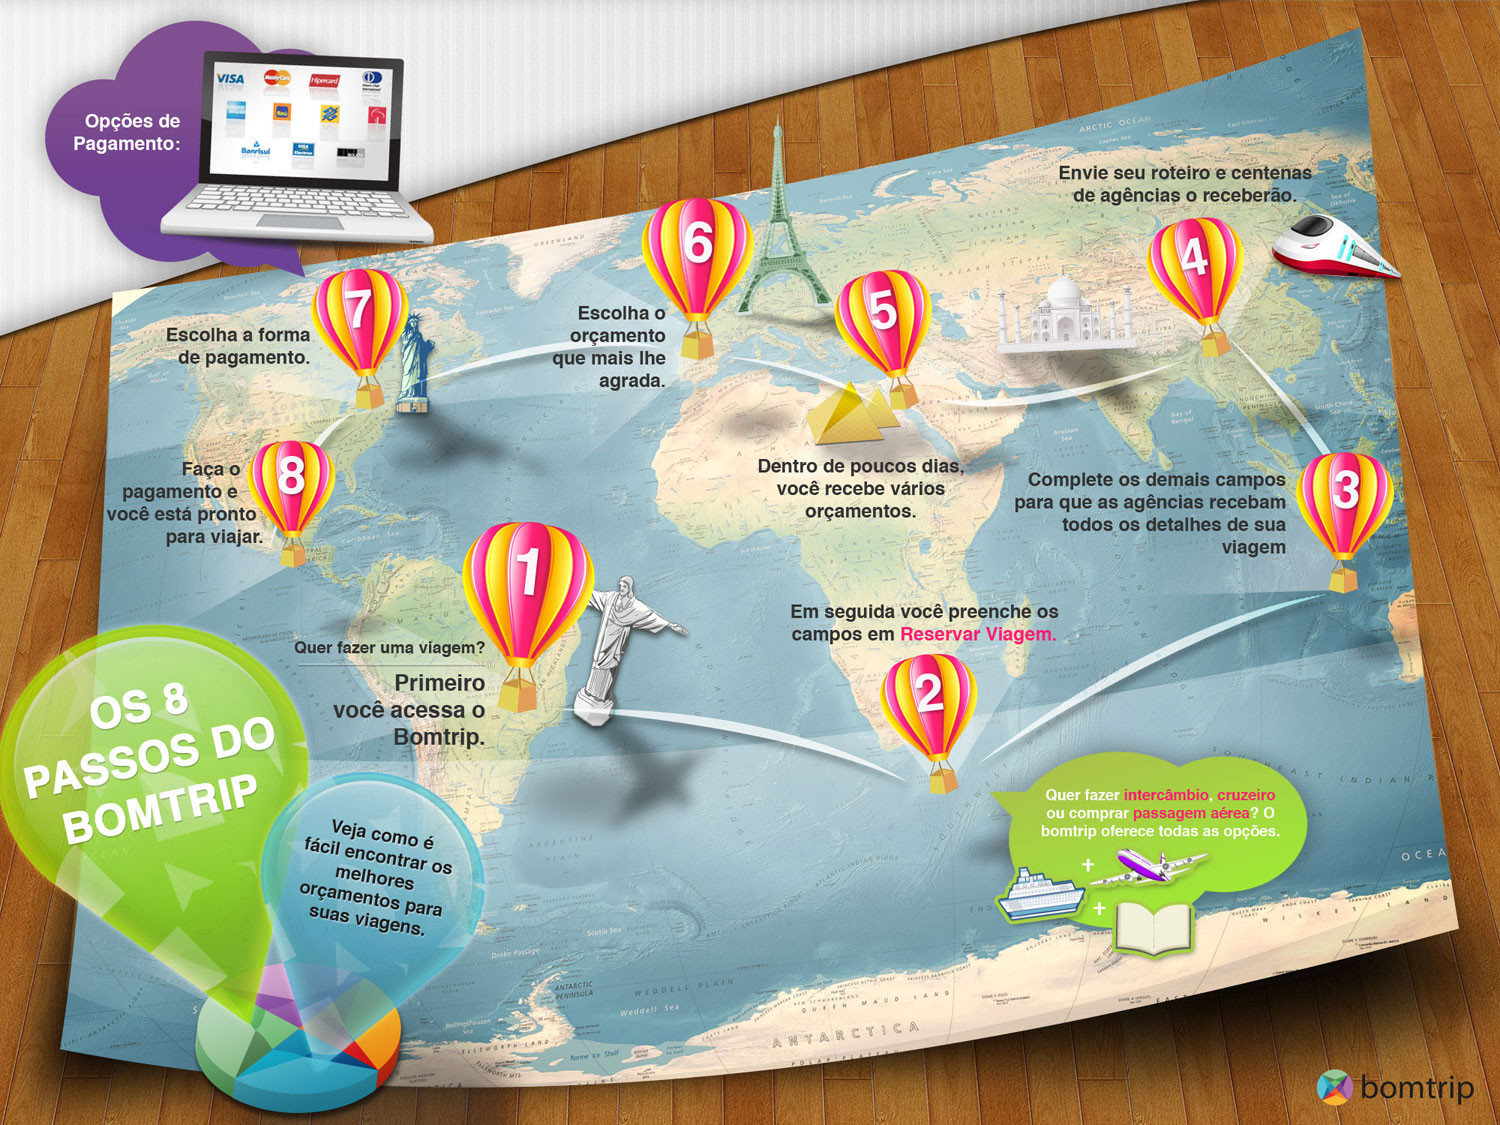 Bomtrip's How it Works Infographic